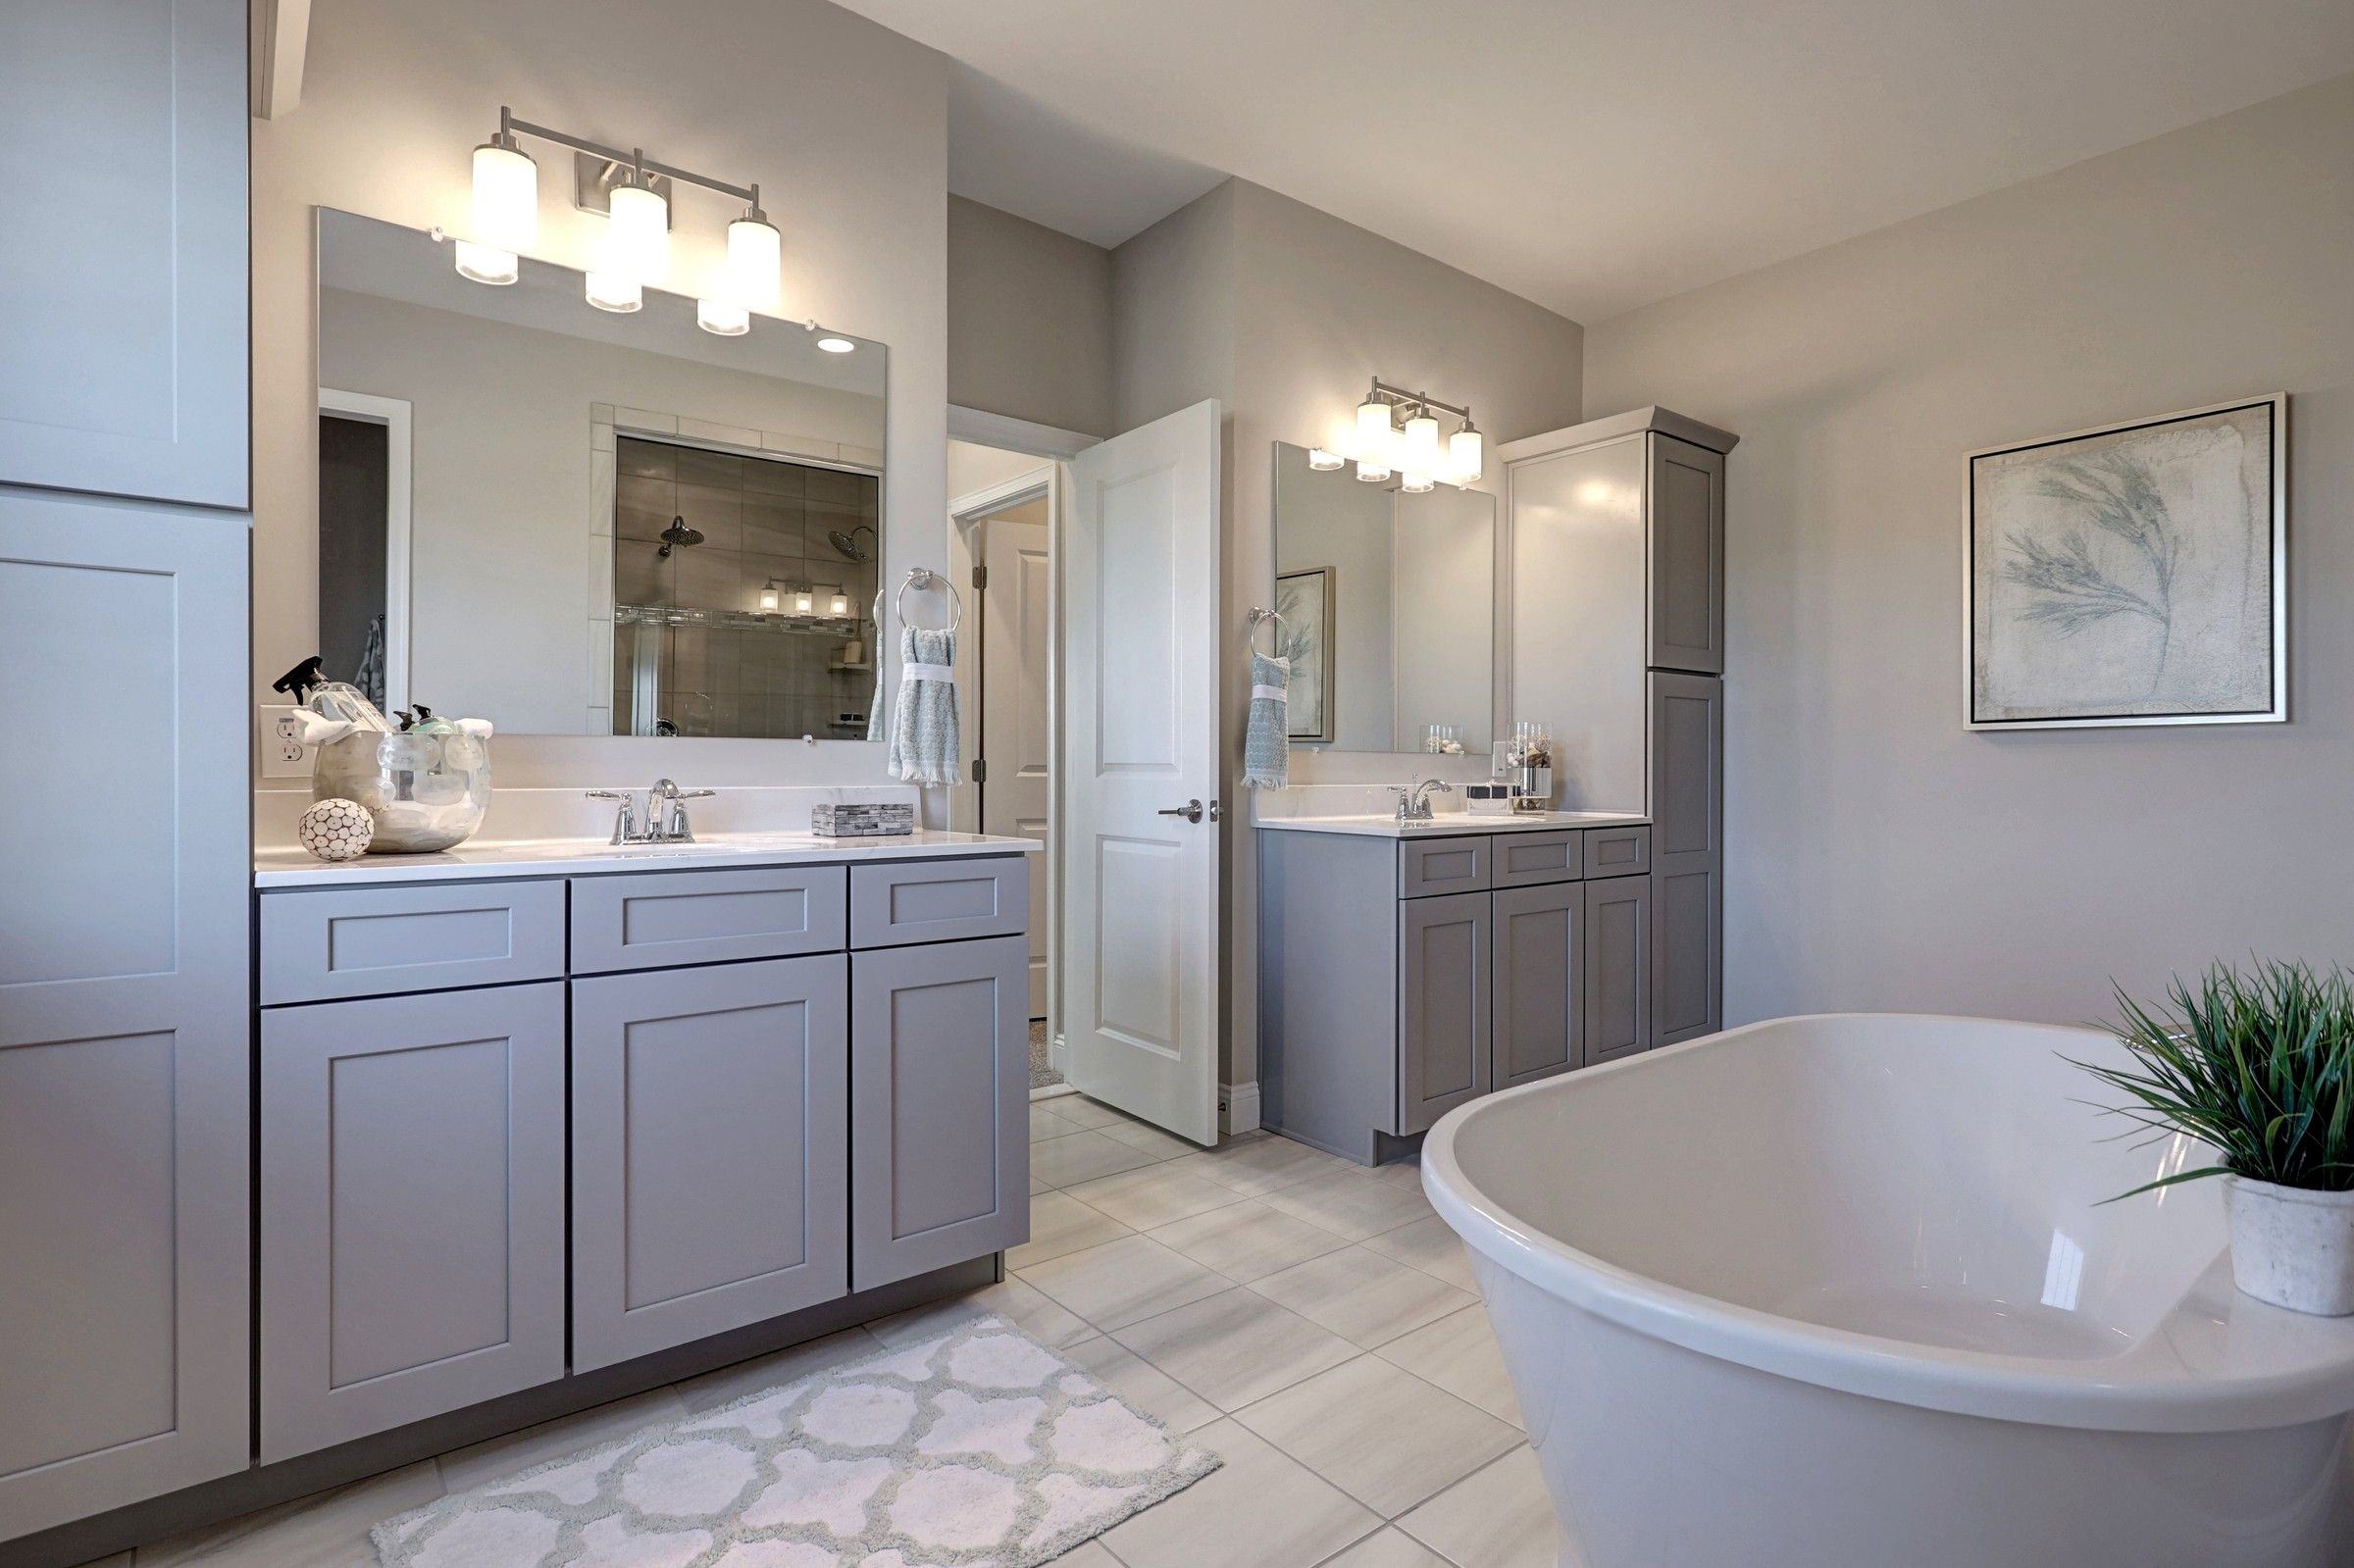 Bathroom featured in the Nottingham Manor By Keystone Custom Homes in York, PA